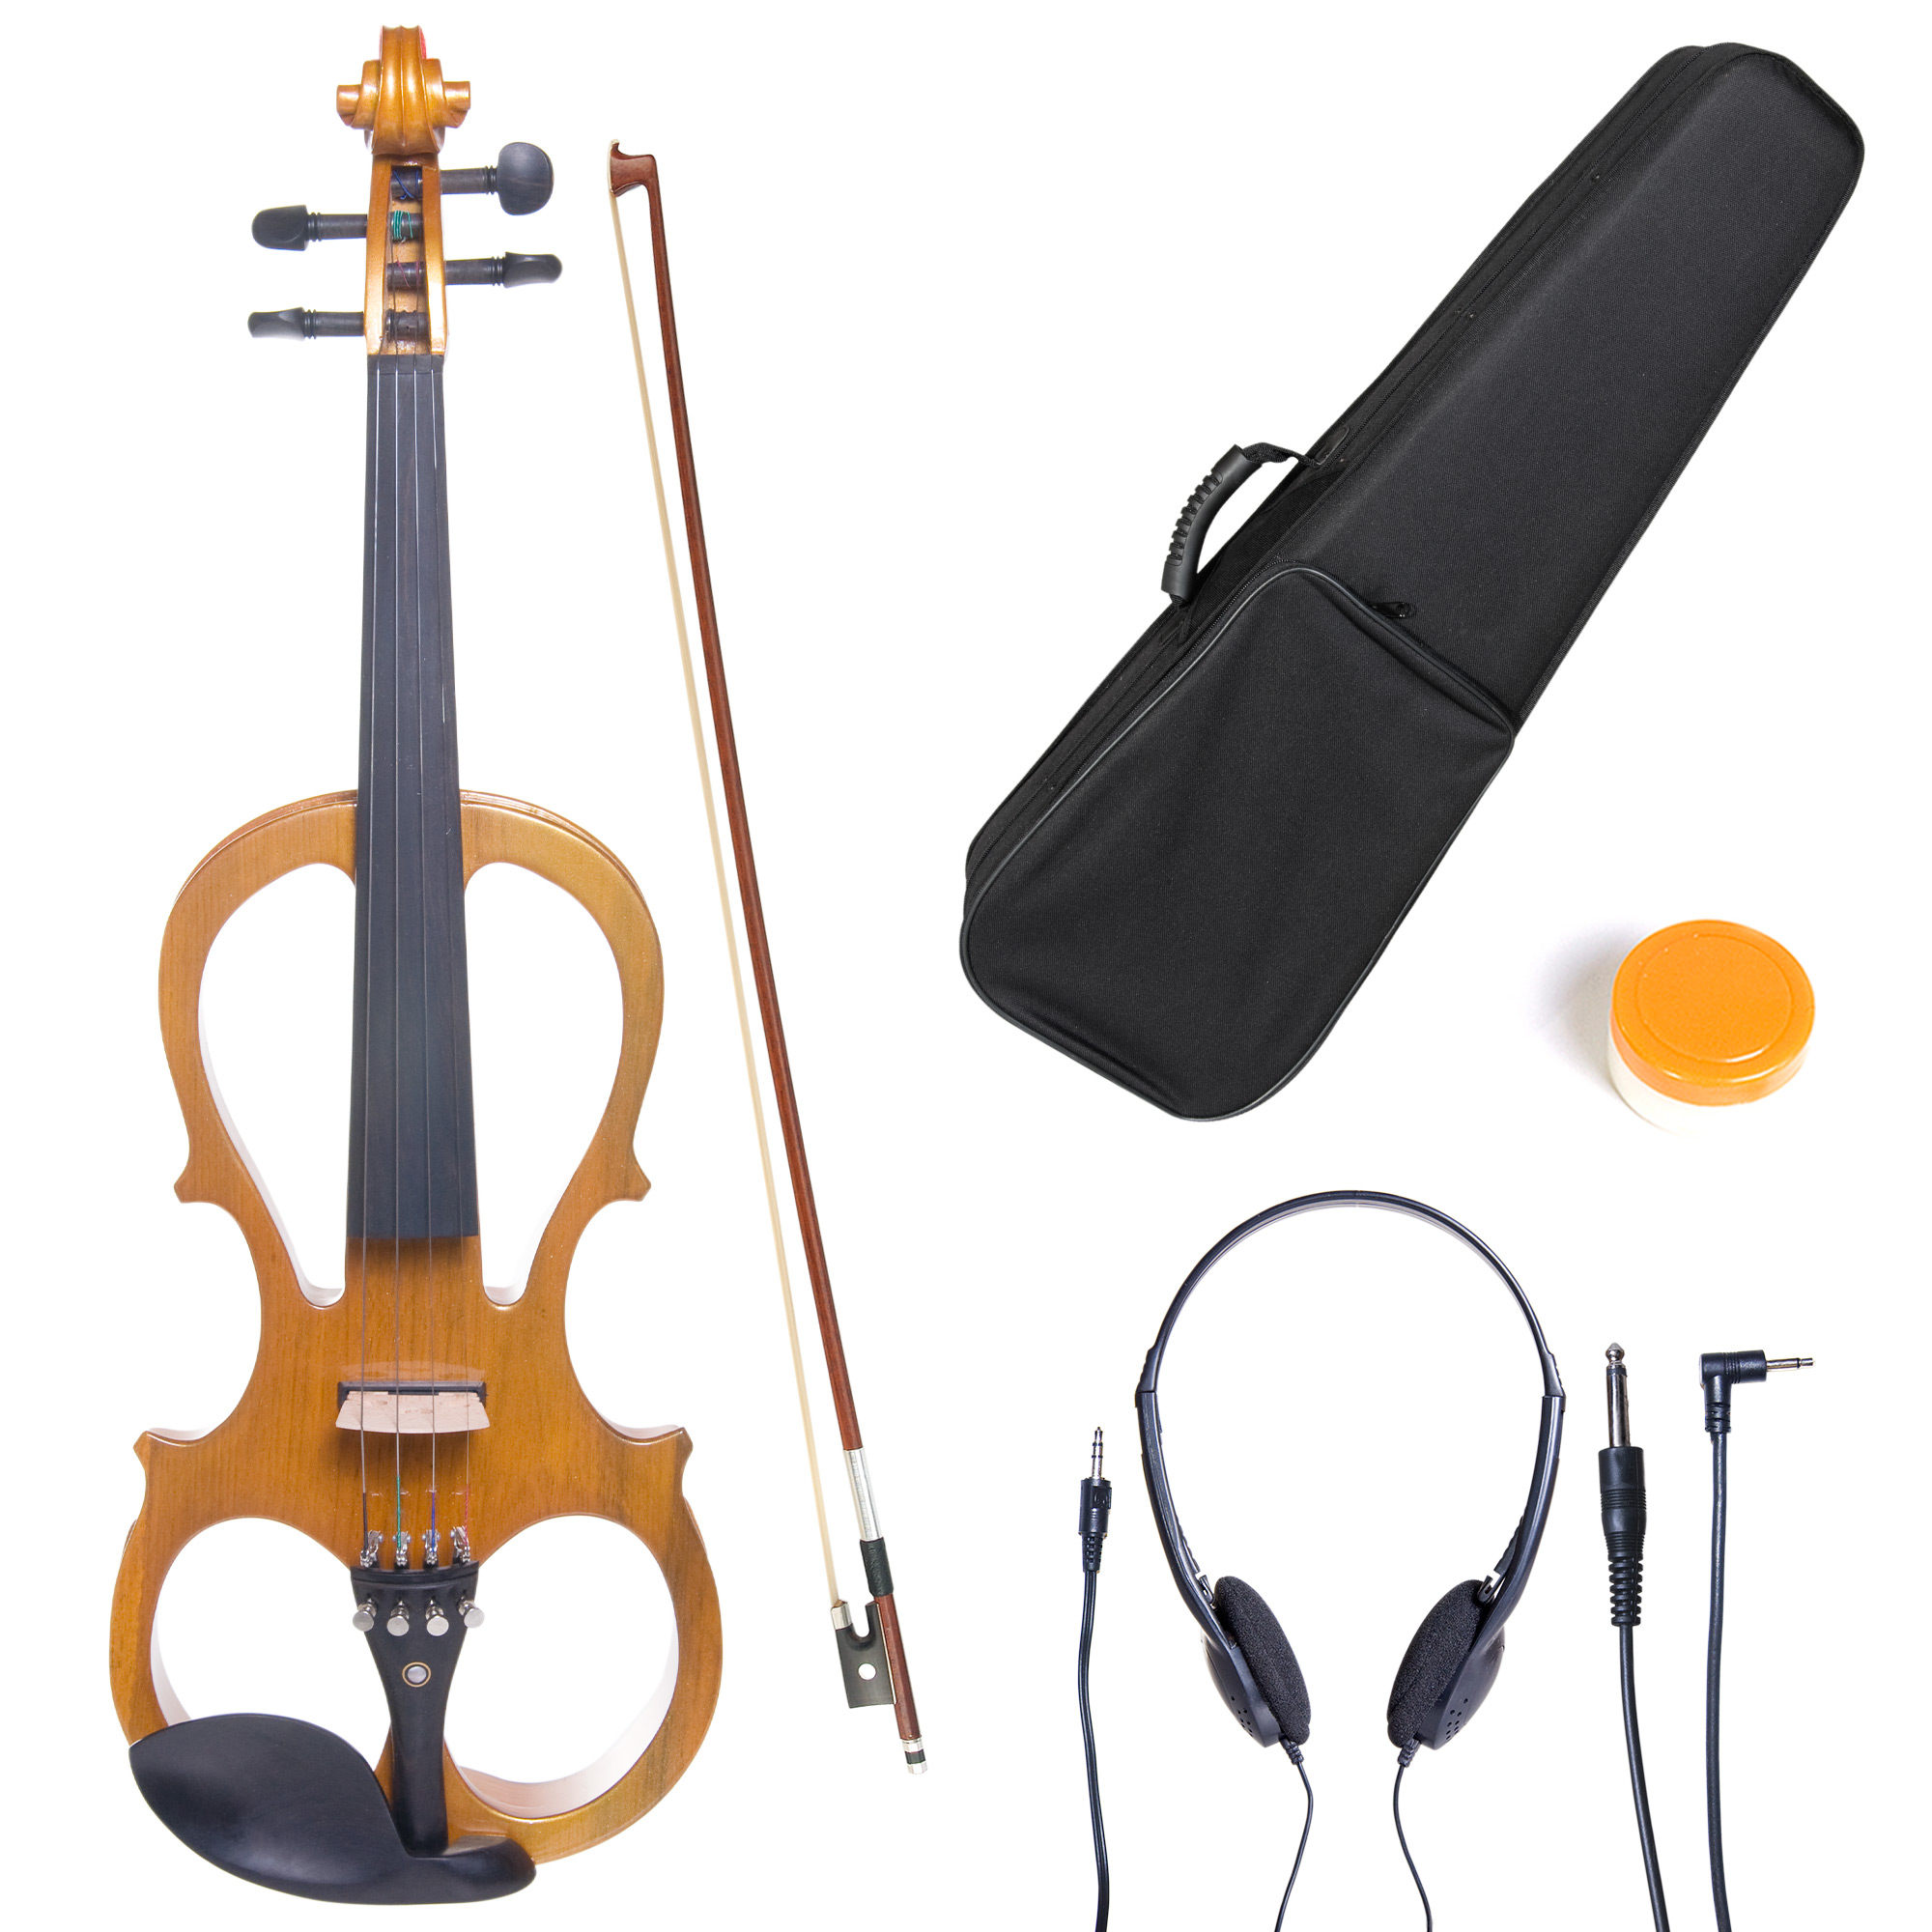 Cecilio 4/4 CEVN-1Y Solidwood Metallic Yellow Maple Electric/Silent Violin with Ebony Fittings-Full Size